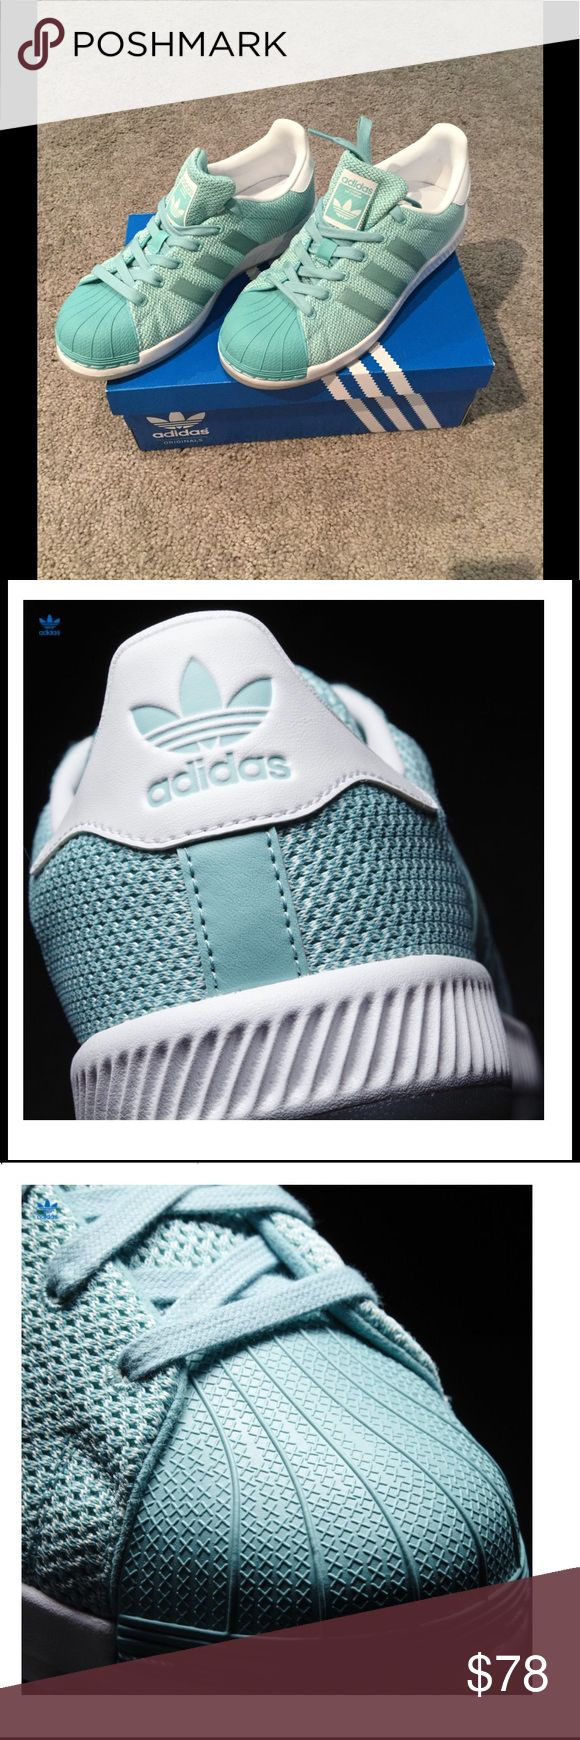 *limited edition* Adidas Superstar Bounce. Size 6. LIKE NEW! *RARE* women's adidas Superstar Bounce sneaker! Size 6. Mint green & white. Shoes were only worn once for a couple hours. Barely any scuffs or dirt on the sole. Comes in original box. (I find th